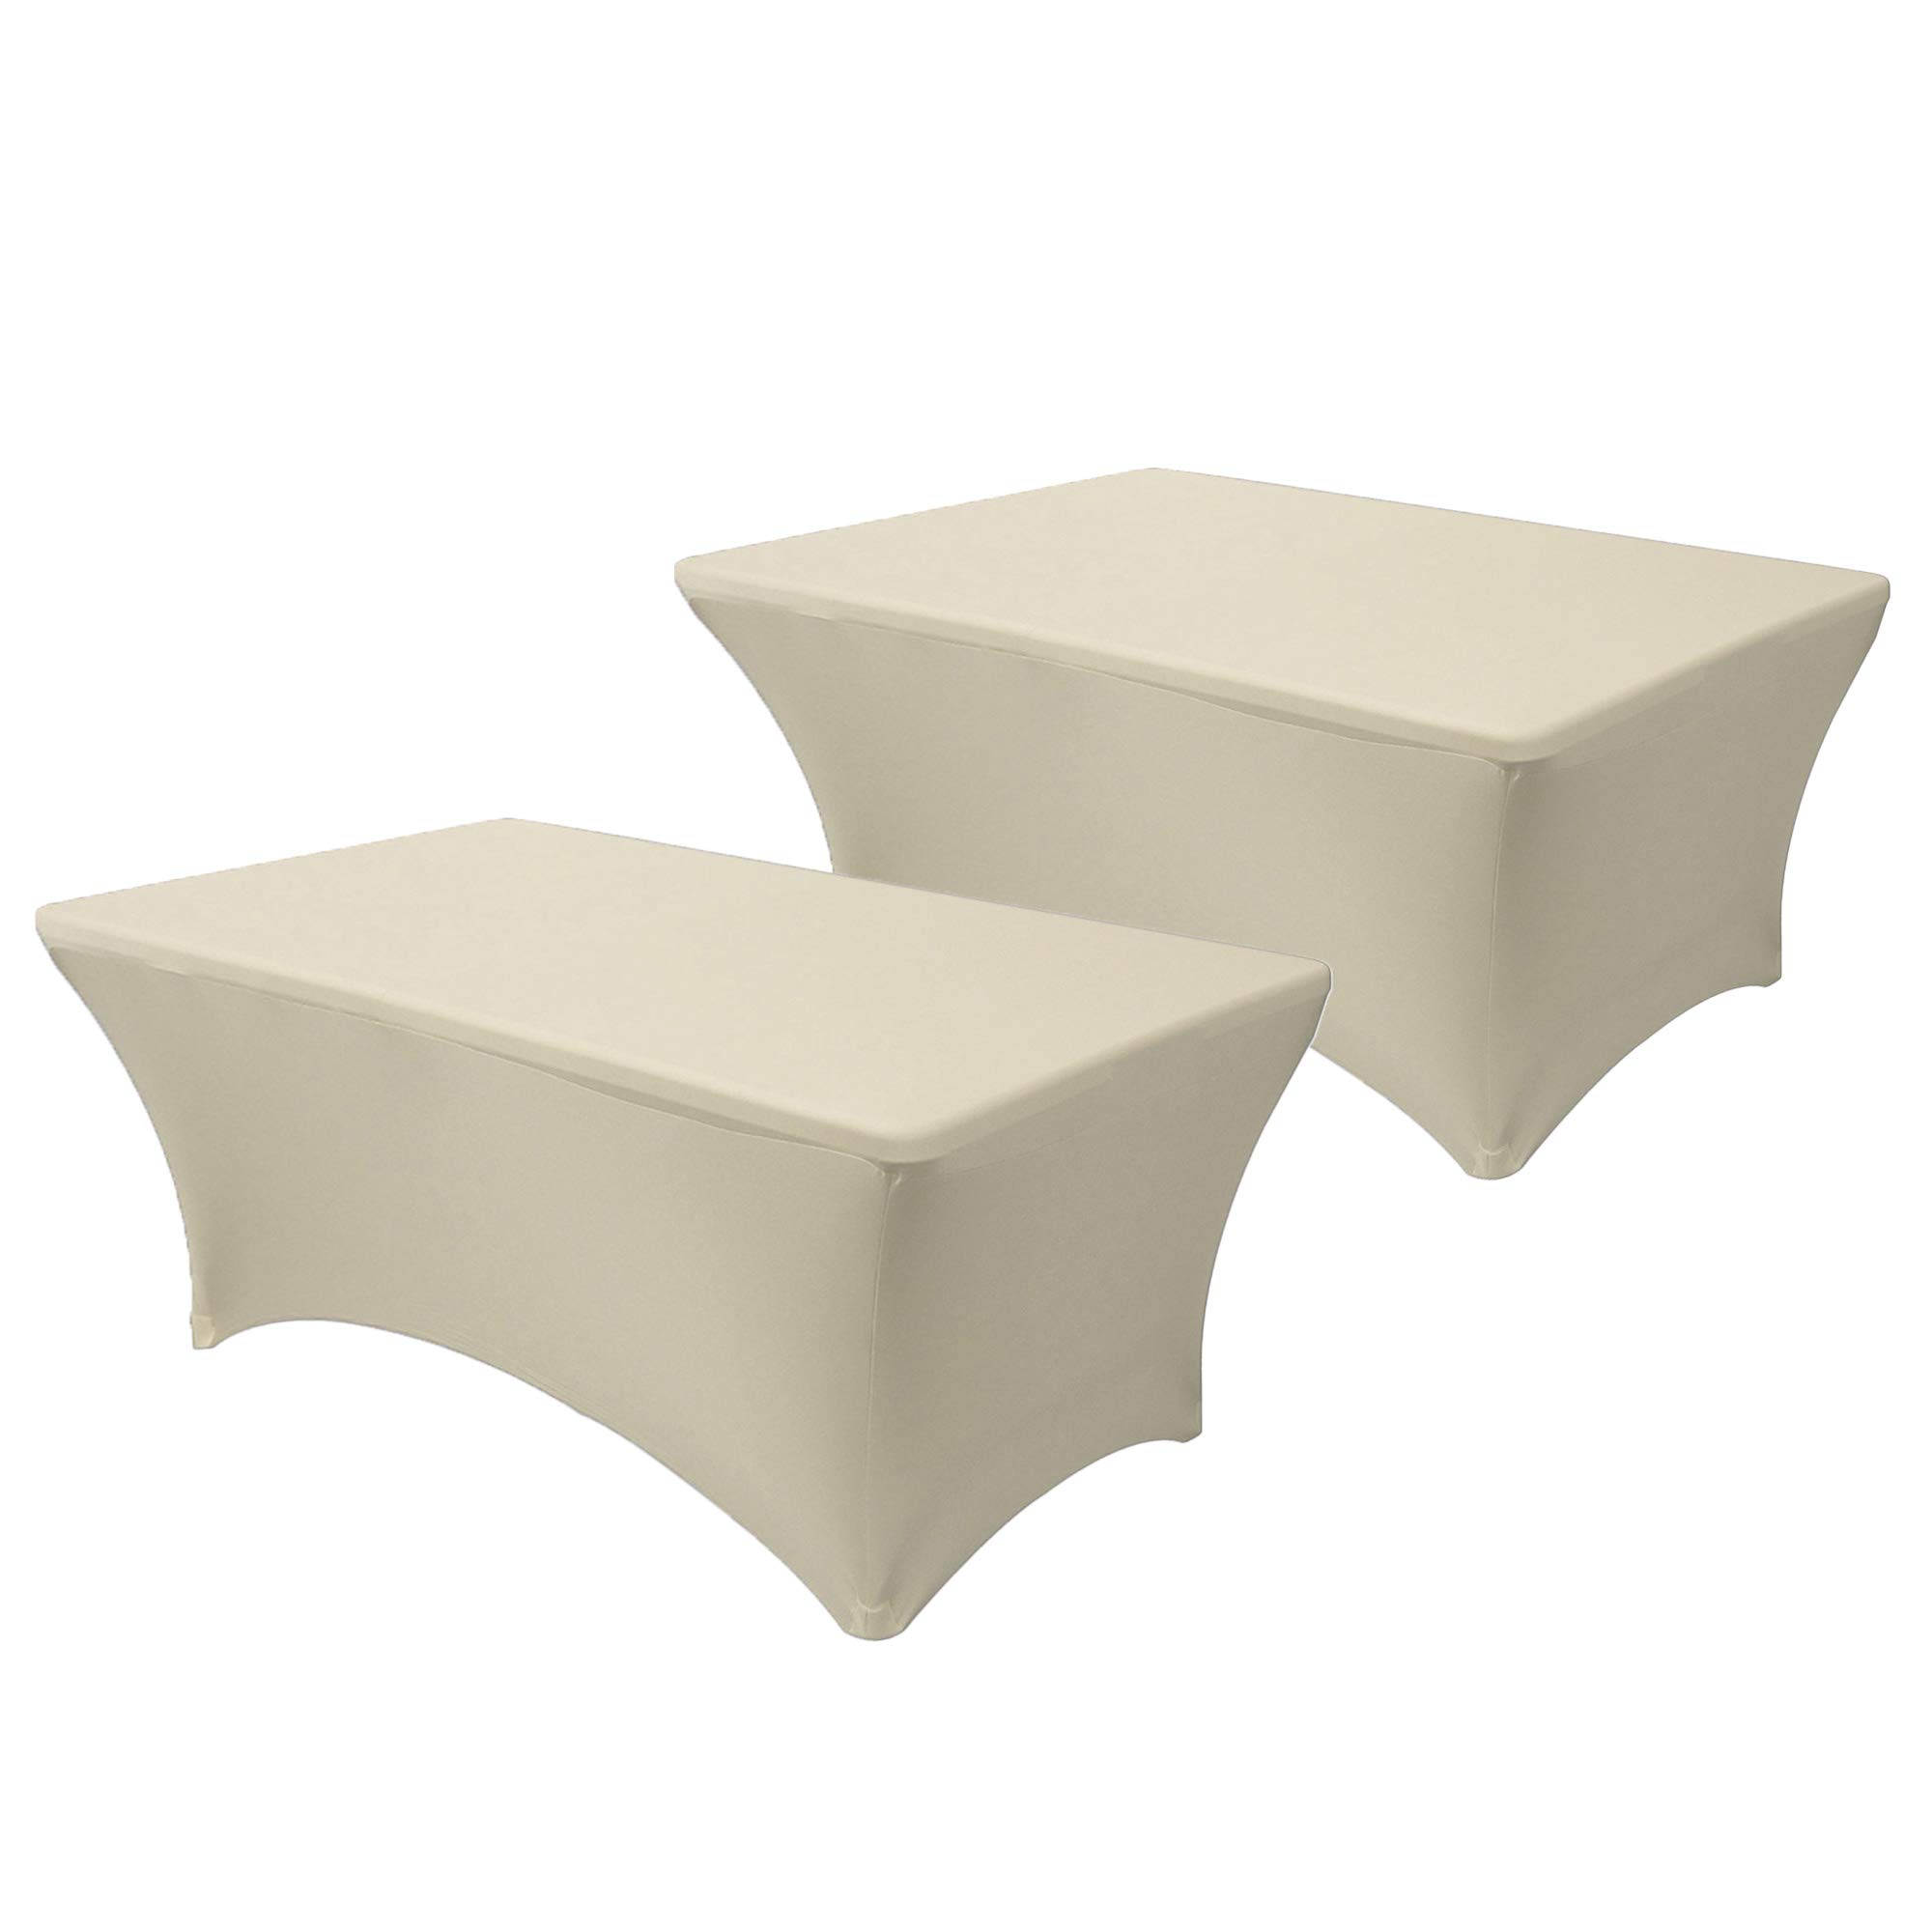 Your Chair Covers - Pack of 2 Stretch Spandex Table Cover for 6 Ft Rectangular Tables, 72'' Length x 30'' Width x 30'' Height Fitted Tablecloth for Standard Folding Tables - Ivory